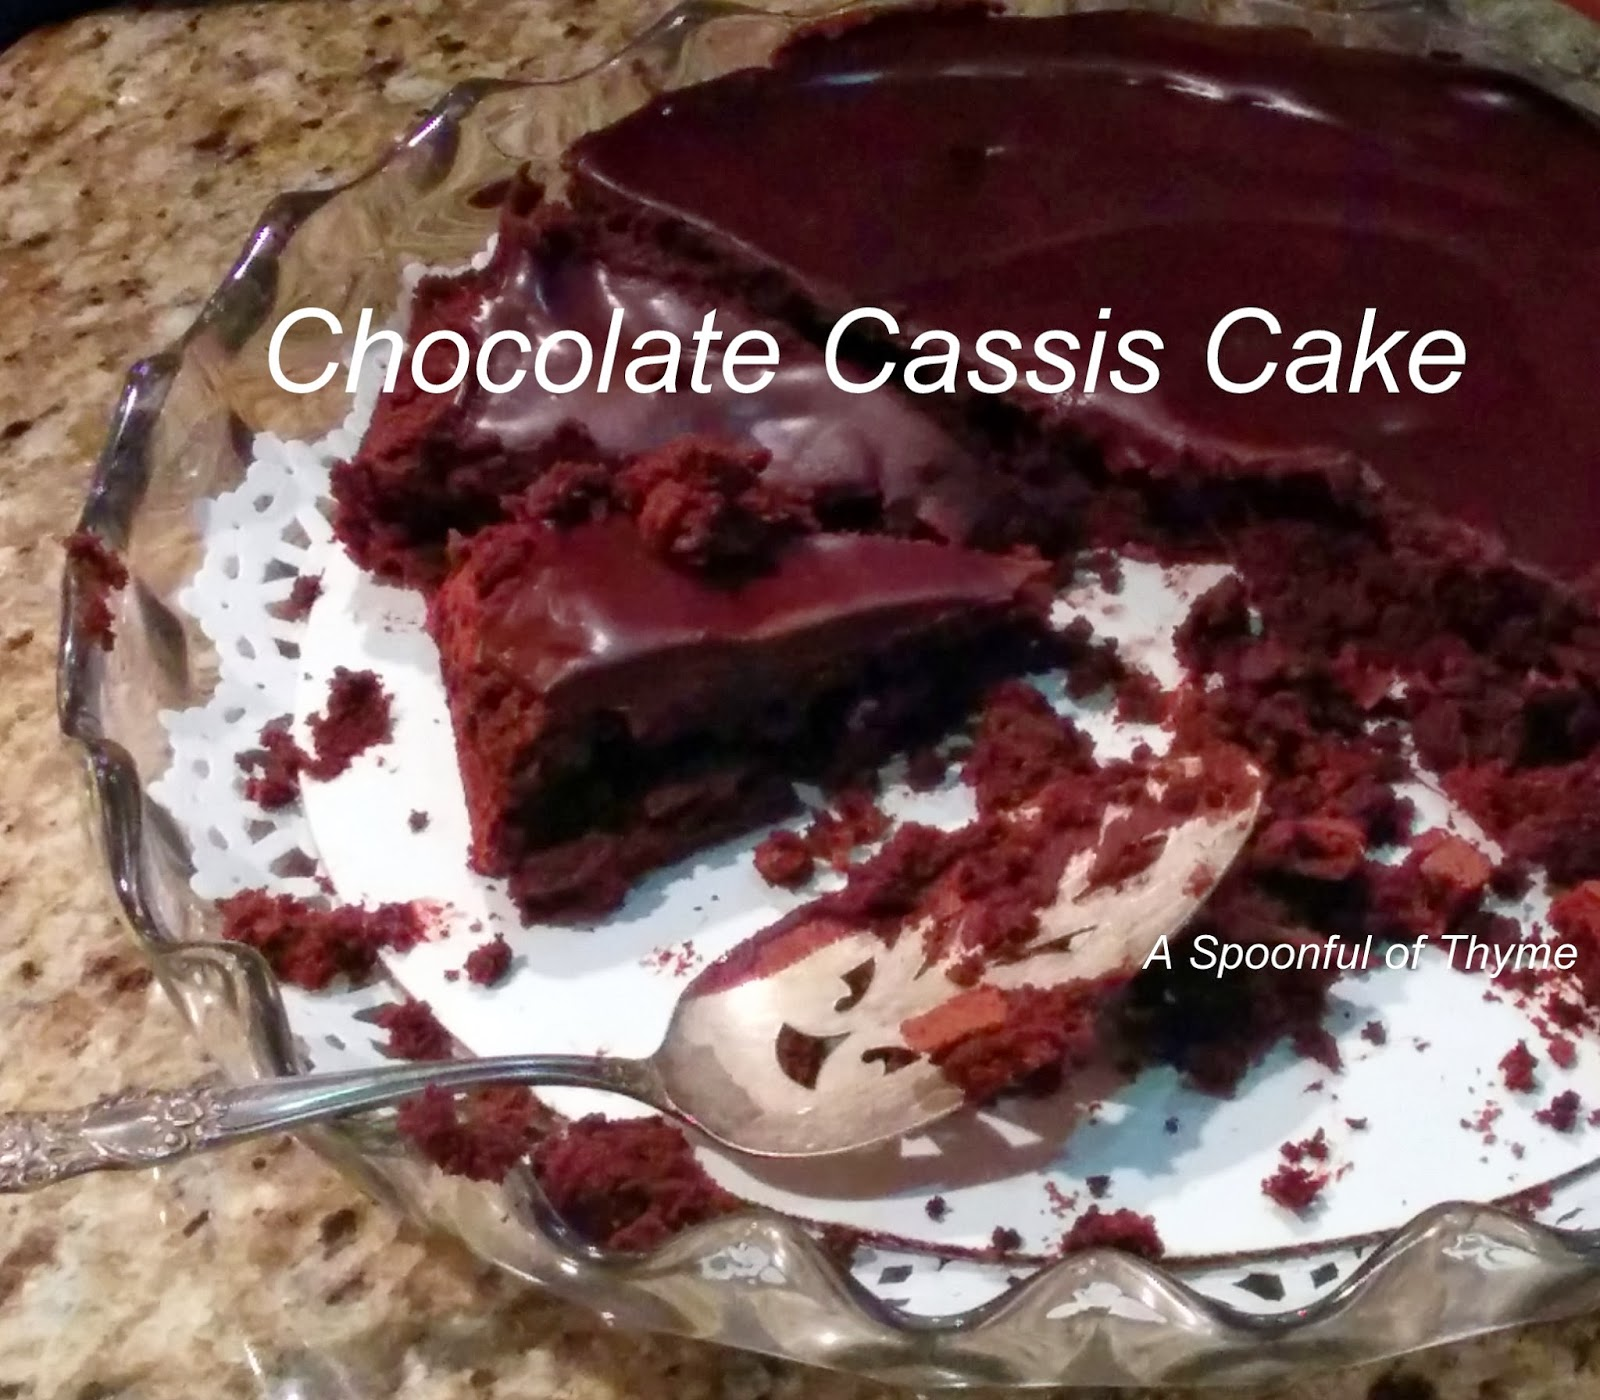 One Of The Gals Made This Delicious Chocolate Cassis Cake It Was So Pretty Much Heaven With Every Bite